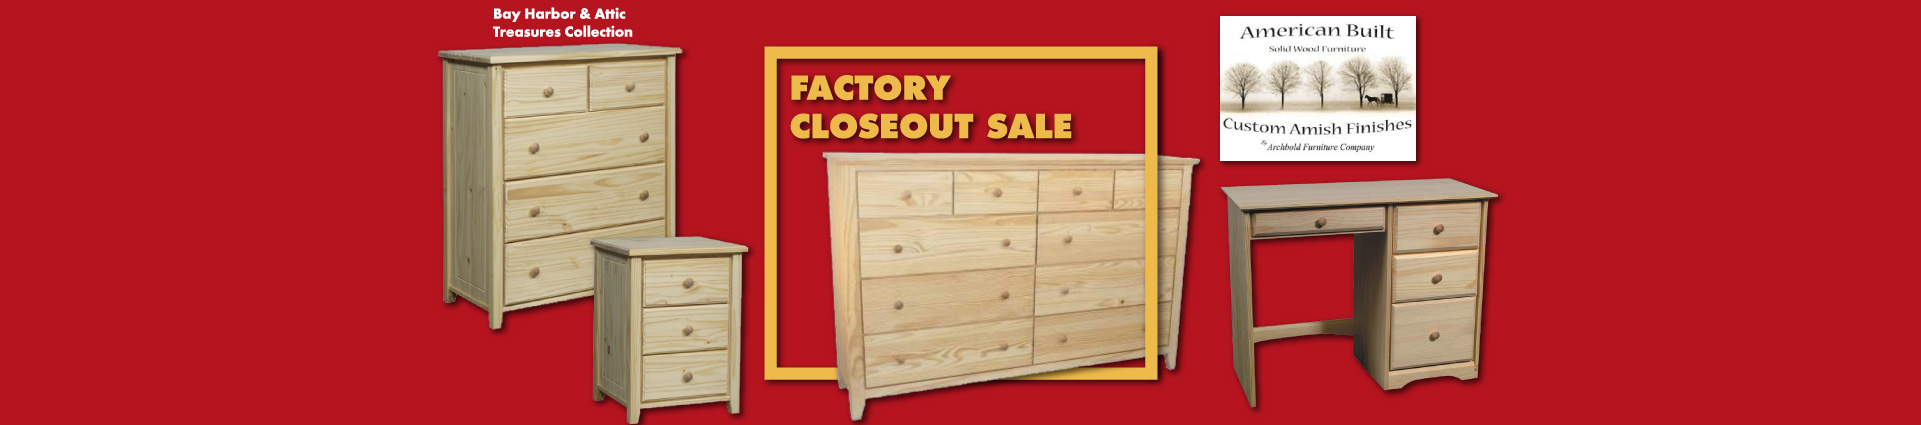 virginia beach furniture closeouts